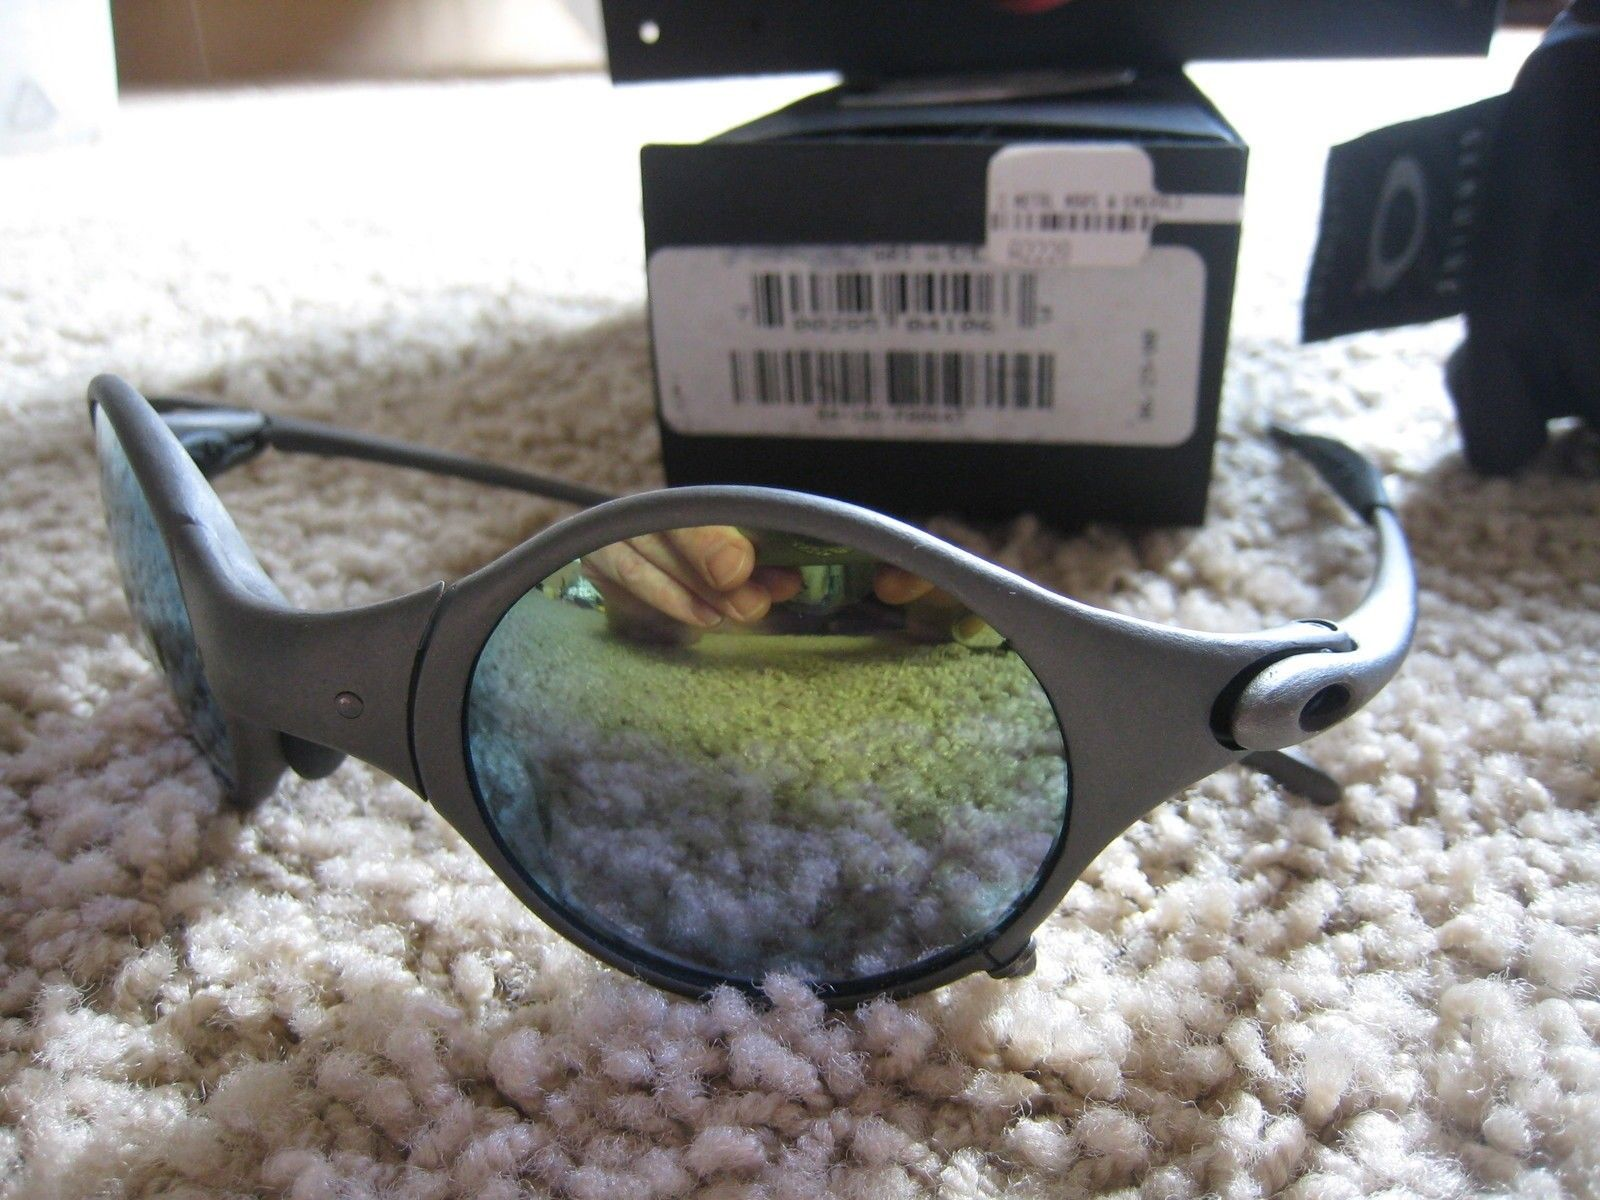 Which Oakley Should I Buy? - $(KGrHqN,!mEFIG!DCc,gBSG87YOTMQ~~60_57.JPG